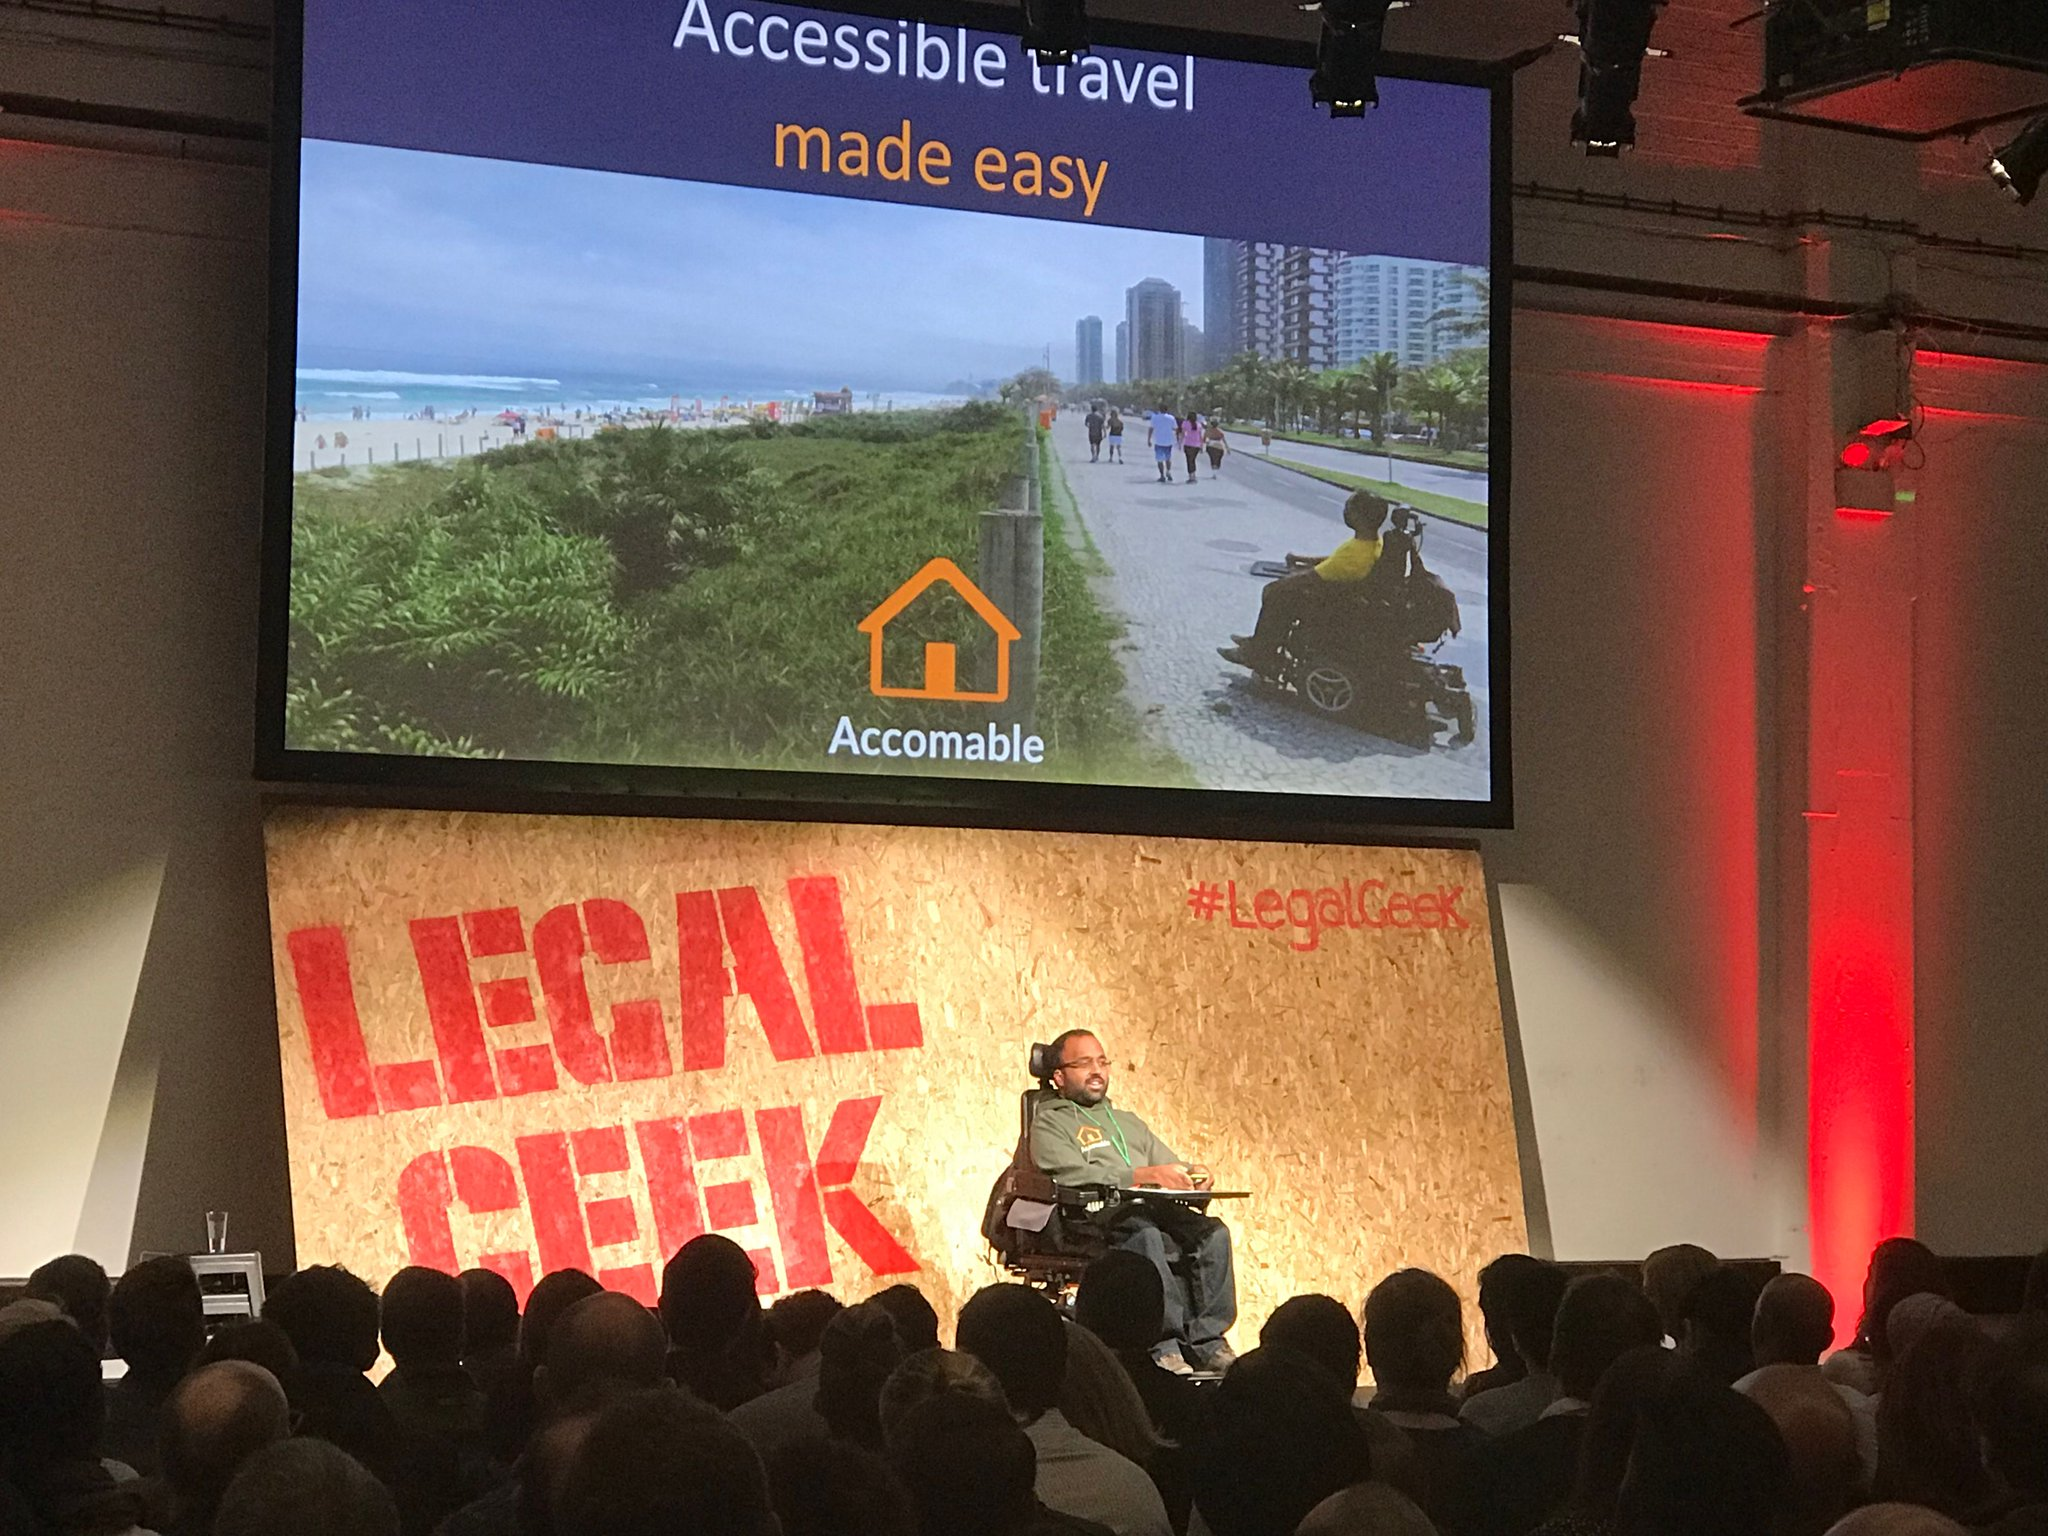 Inspiring talk from a lawyer on the need for accessibility at#LegalGeek @wearelegalgeek @legalpioneer https://t.co/nD8CqZJ2KG